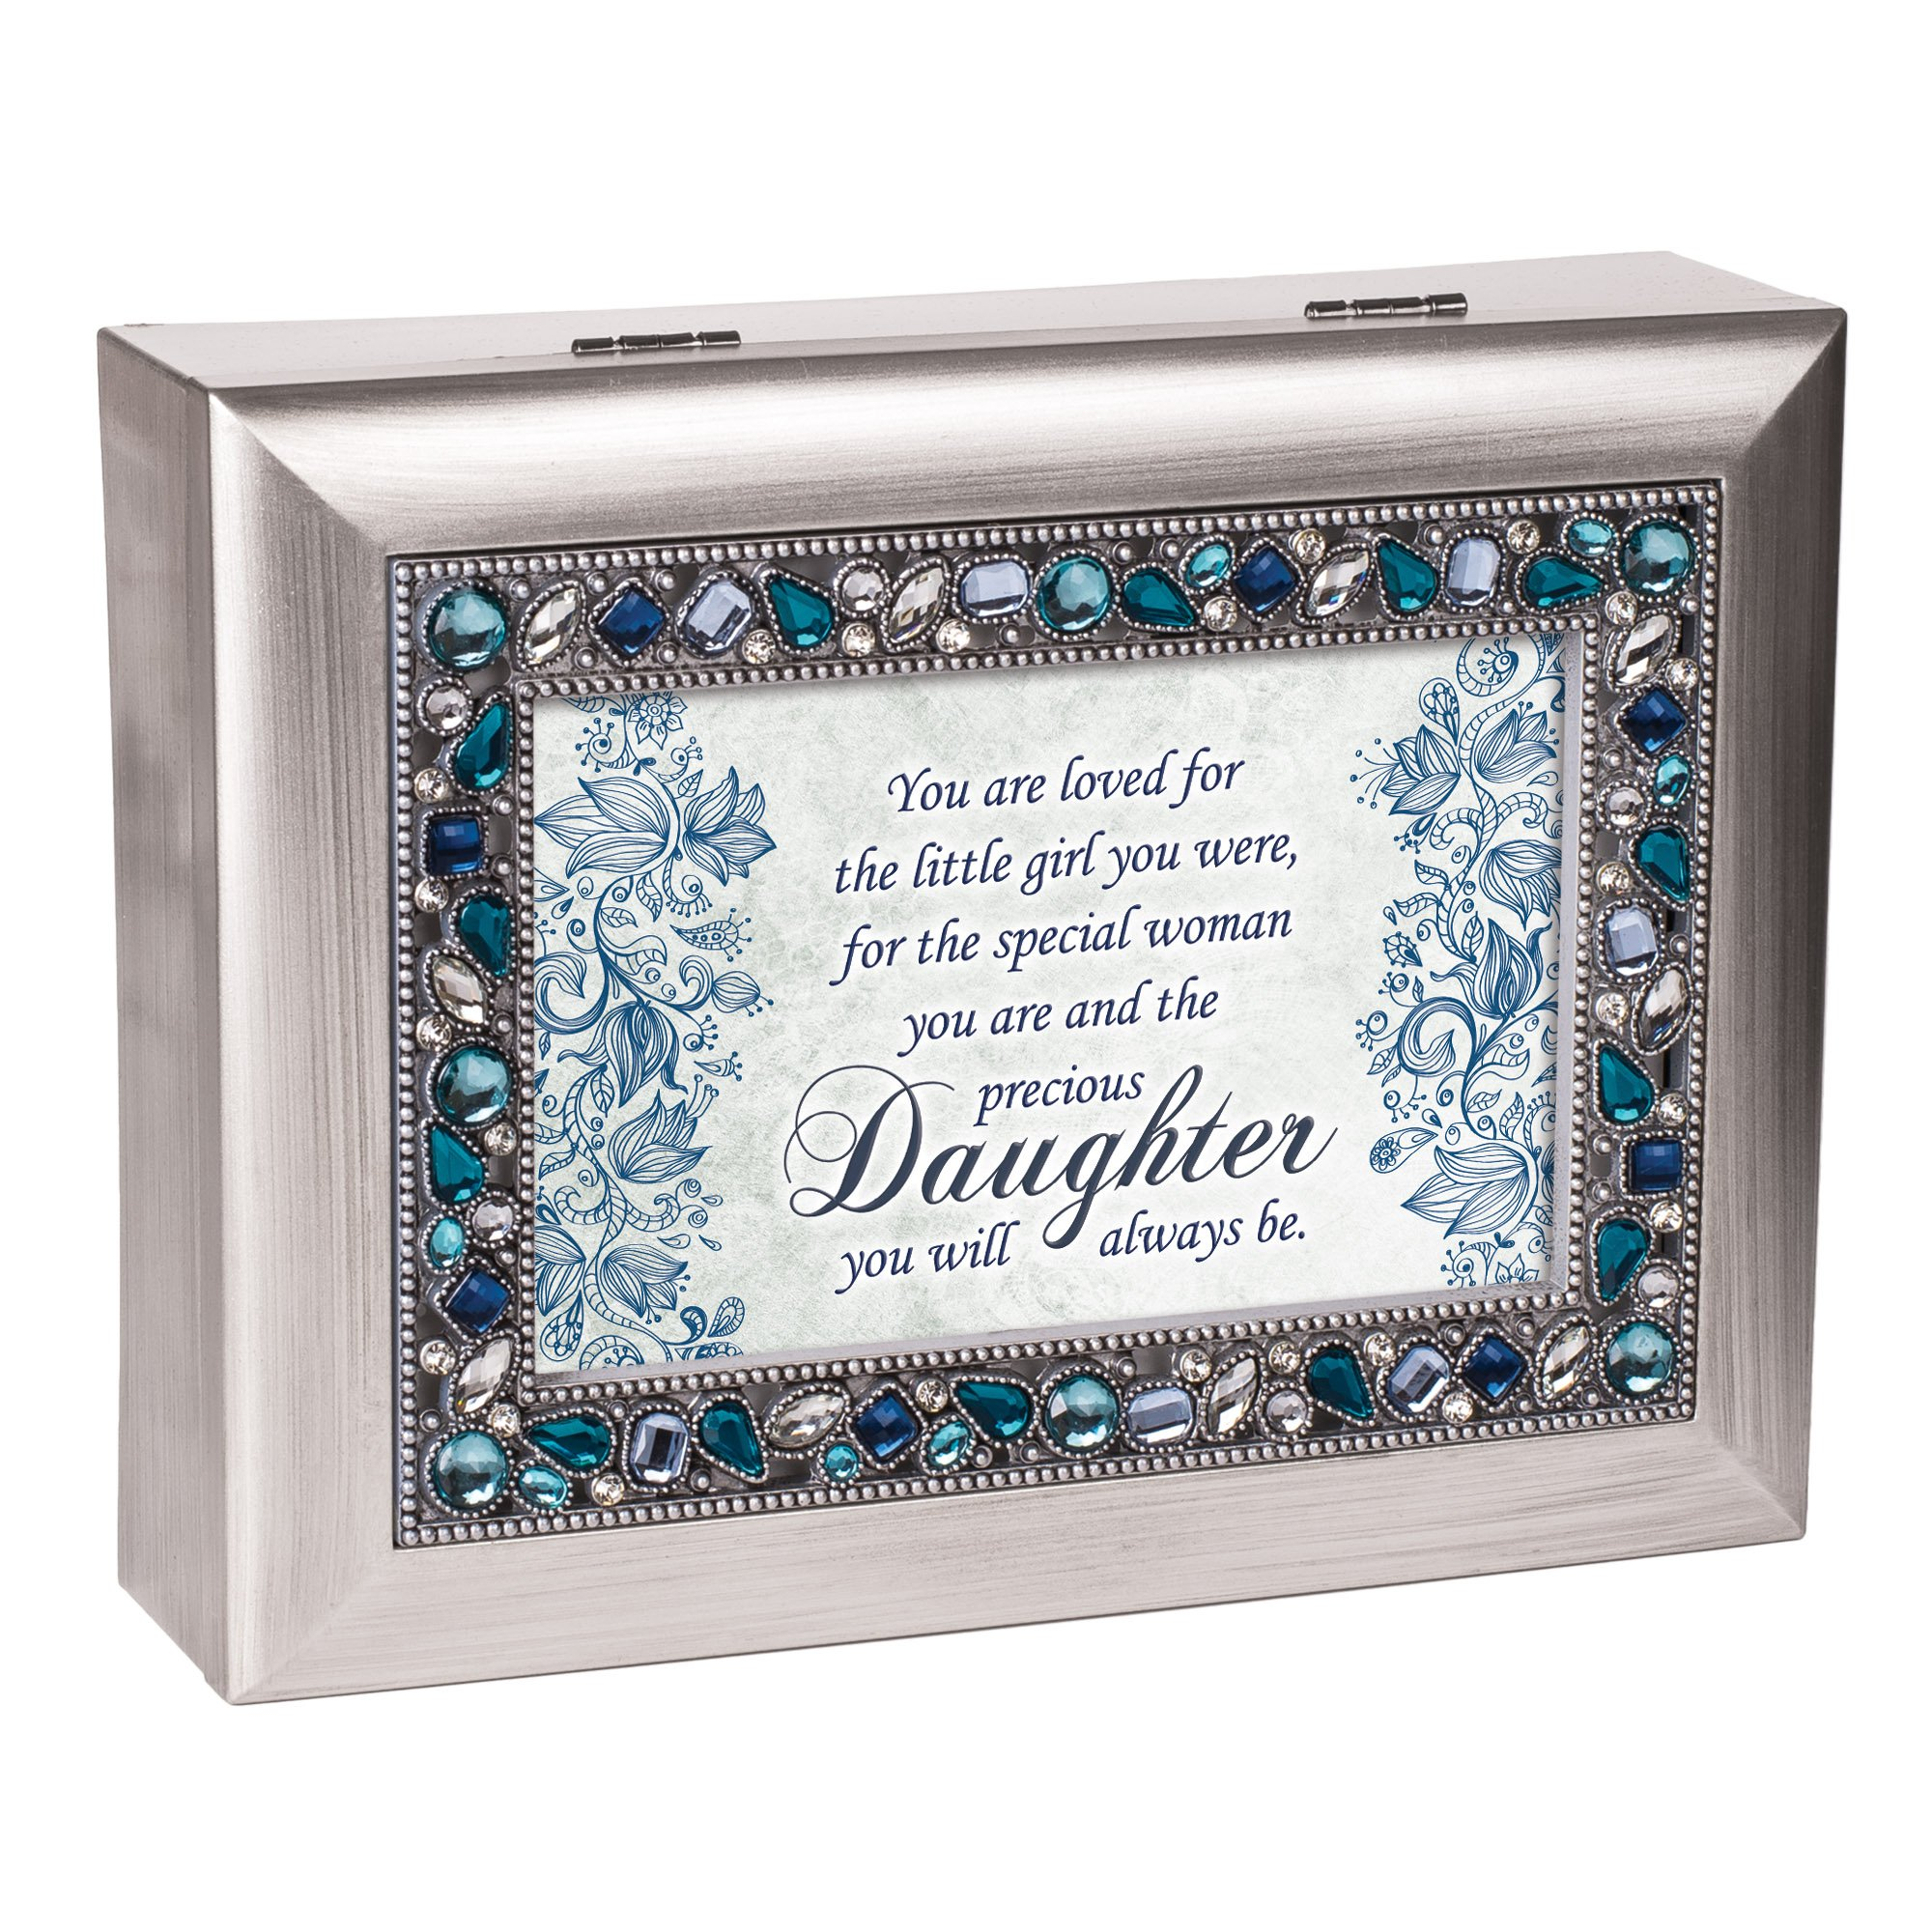 Special Woman Precious Daughter Jeweled Silver Colored Keepsake Music Box Plays You Light Up My Life by Cottage Garden (Image #3)